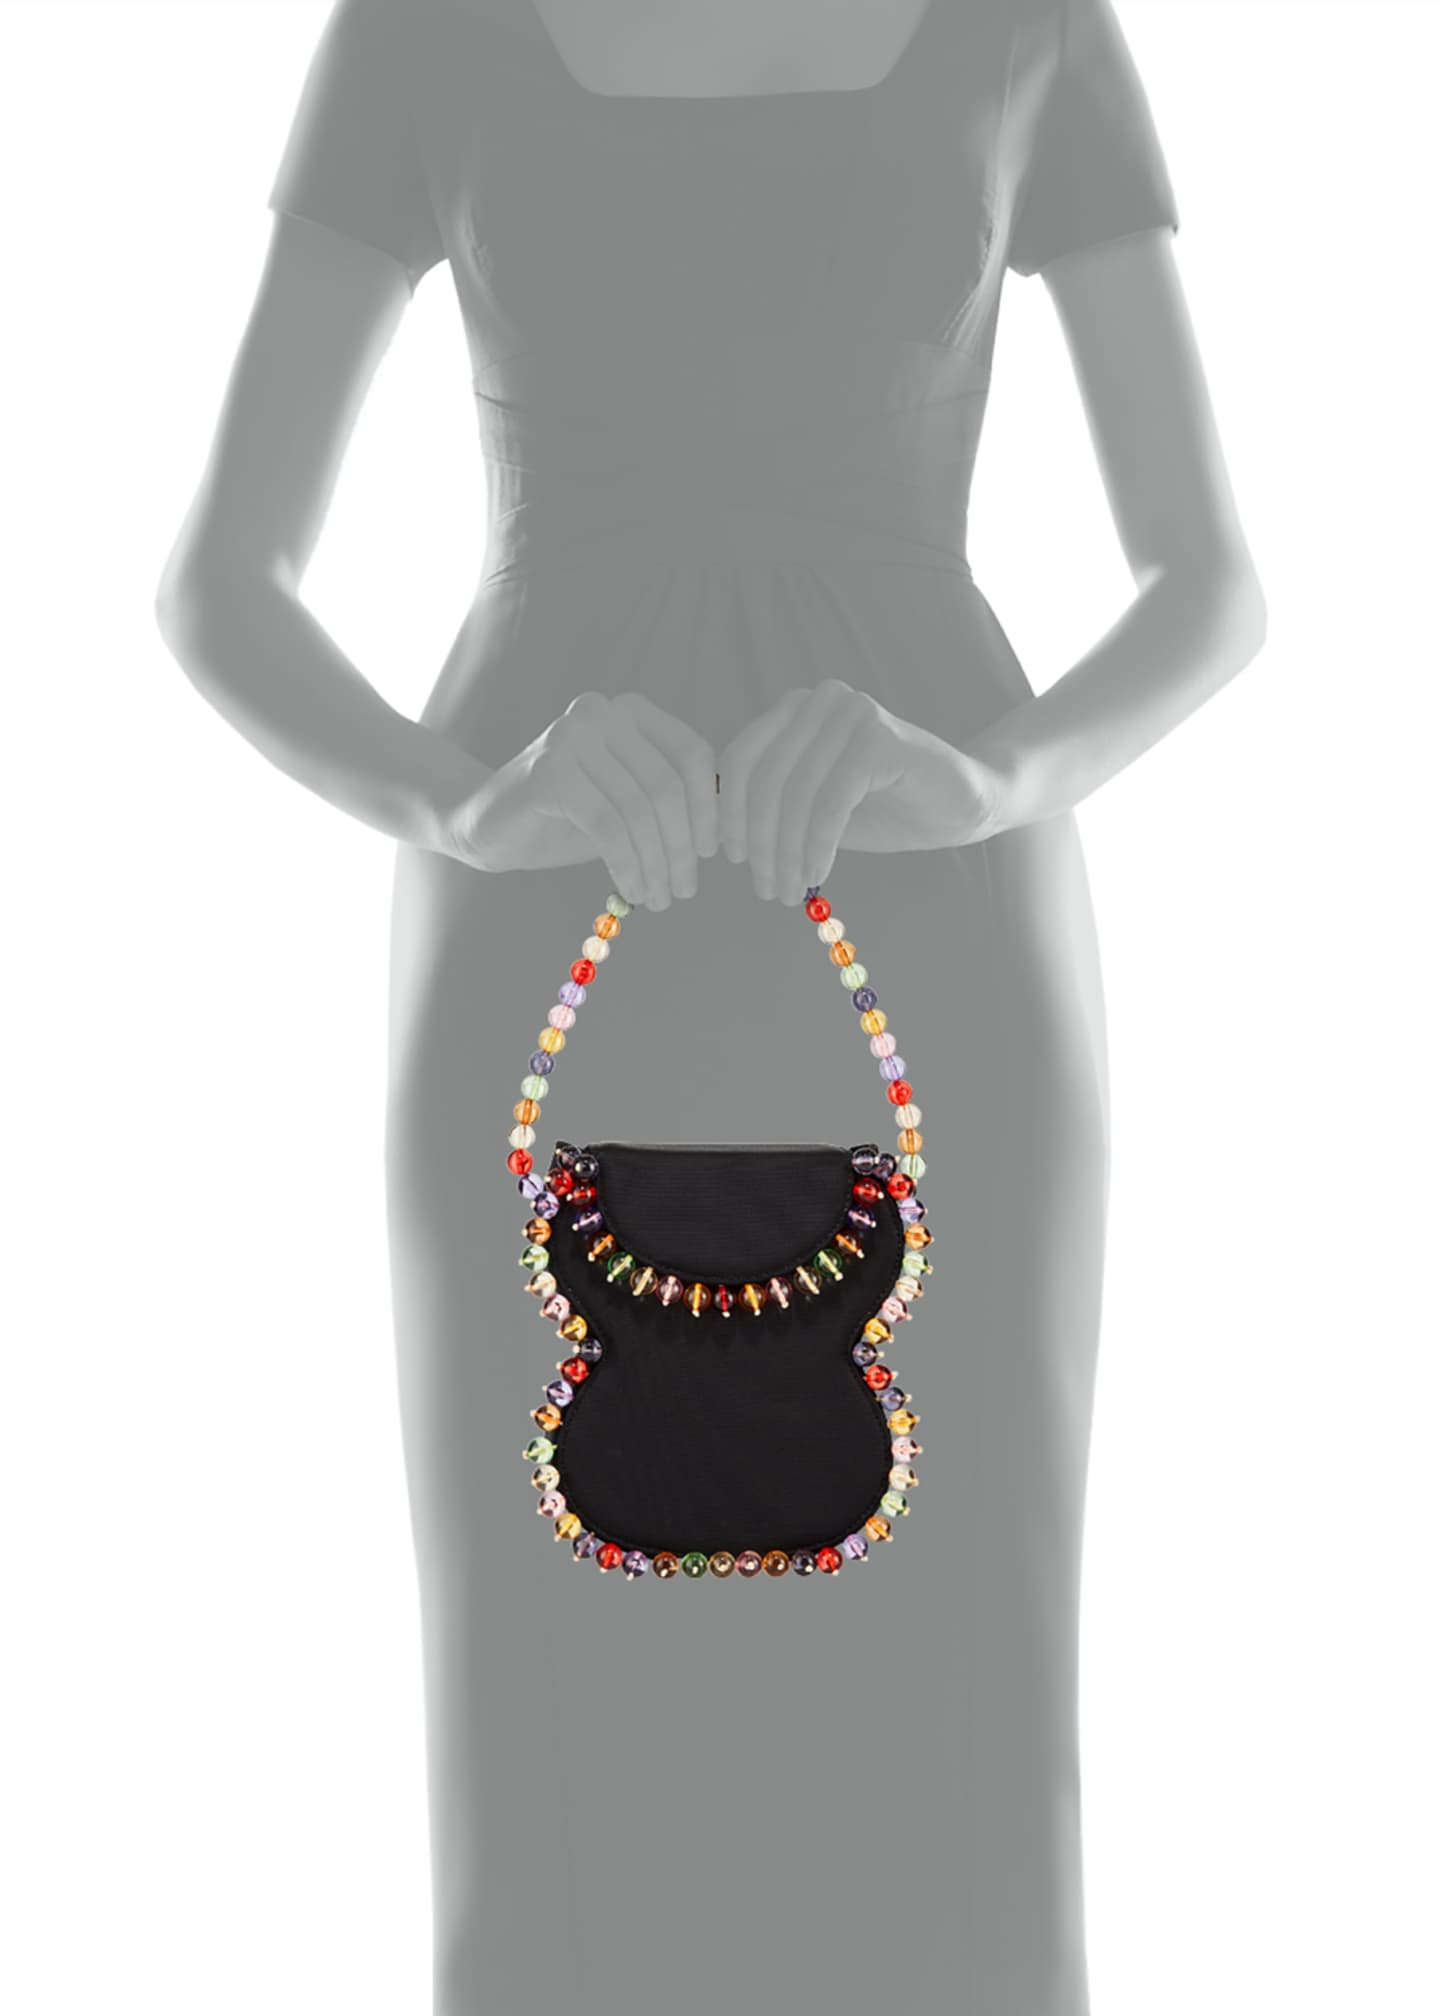 Image 3 of 3: Frida Beaded Grosgrain Top-Handle Bag